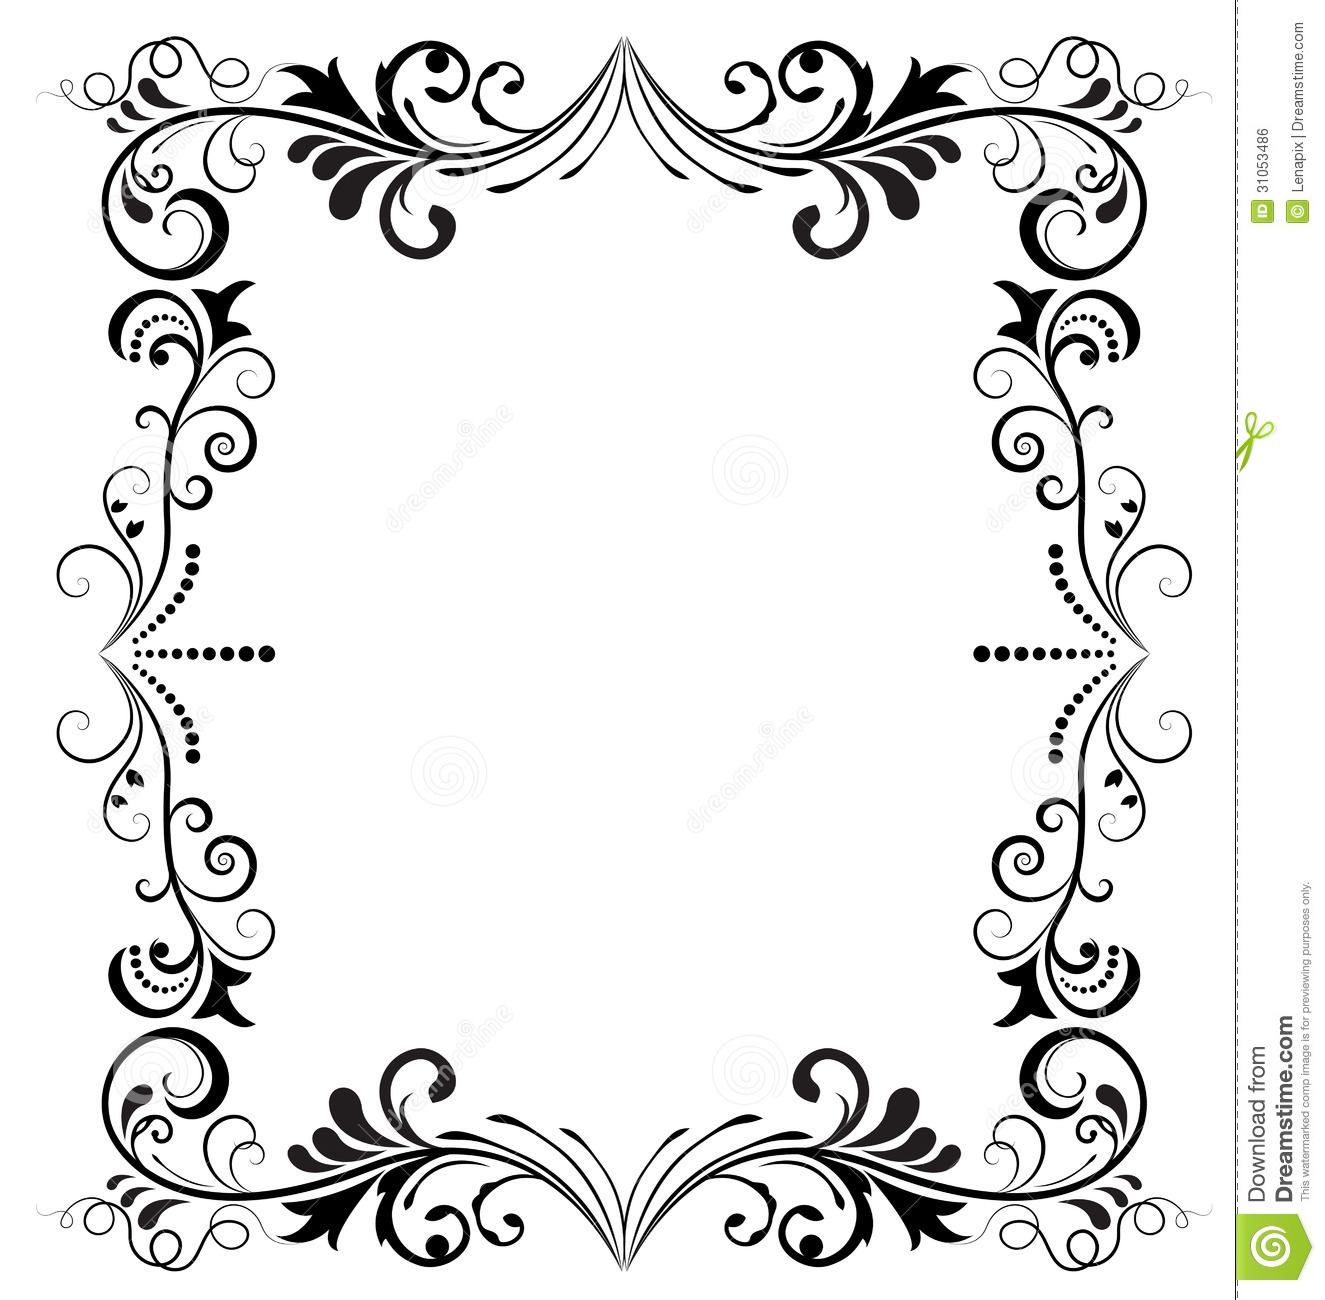 Black and white frame stock vector. Illustration of branches - 31053486